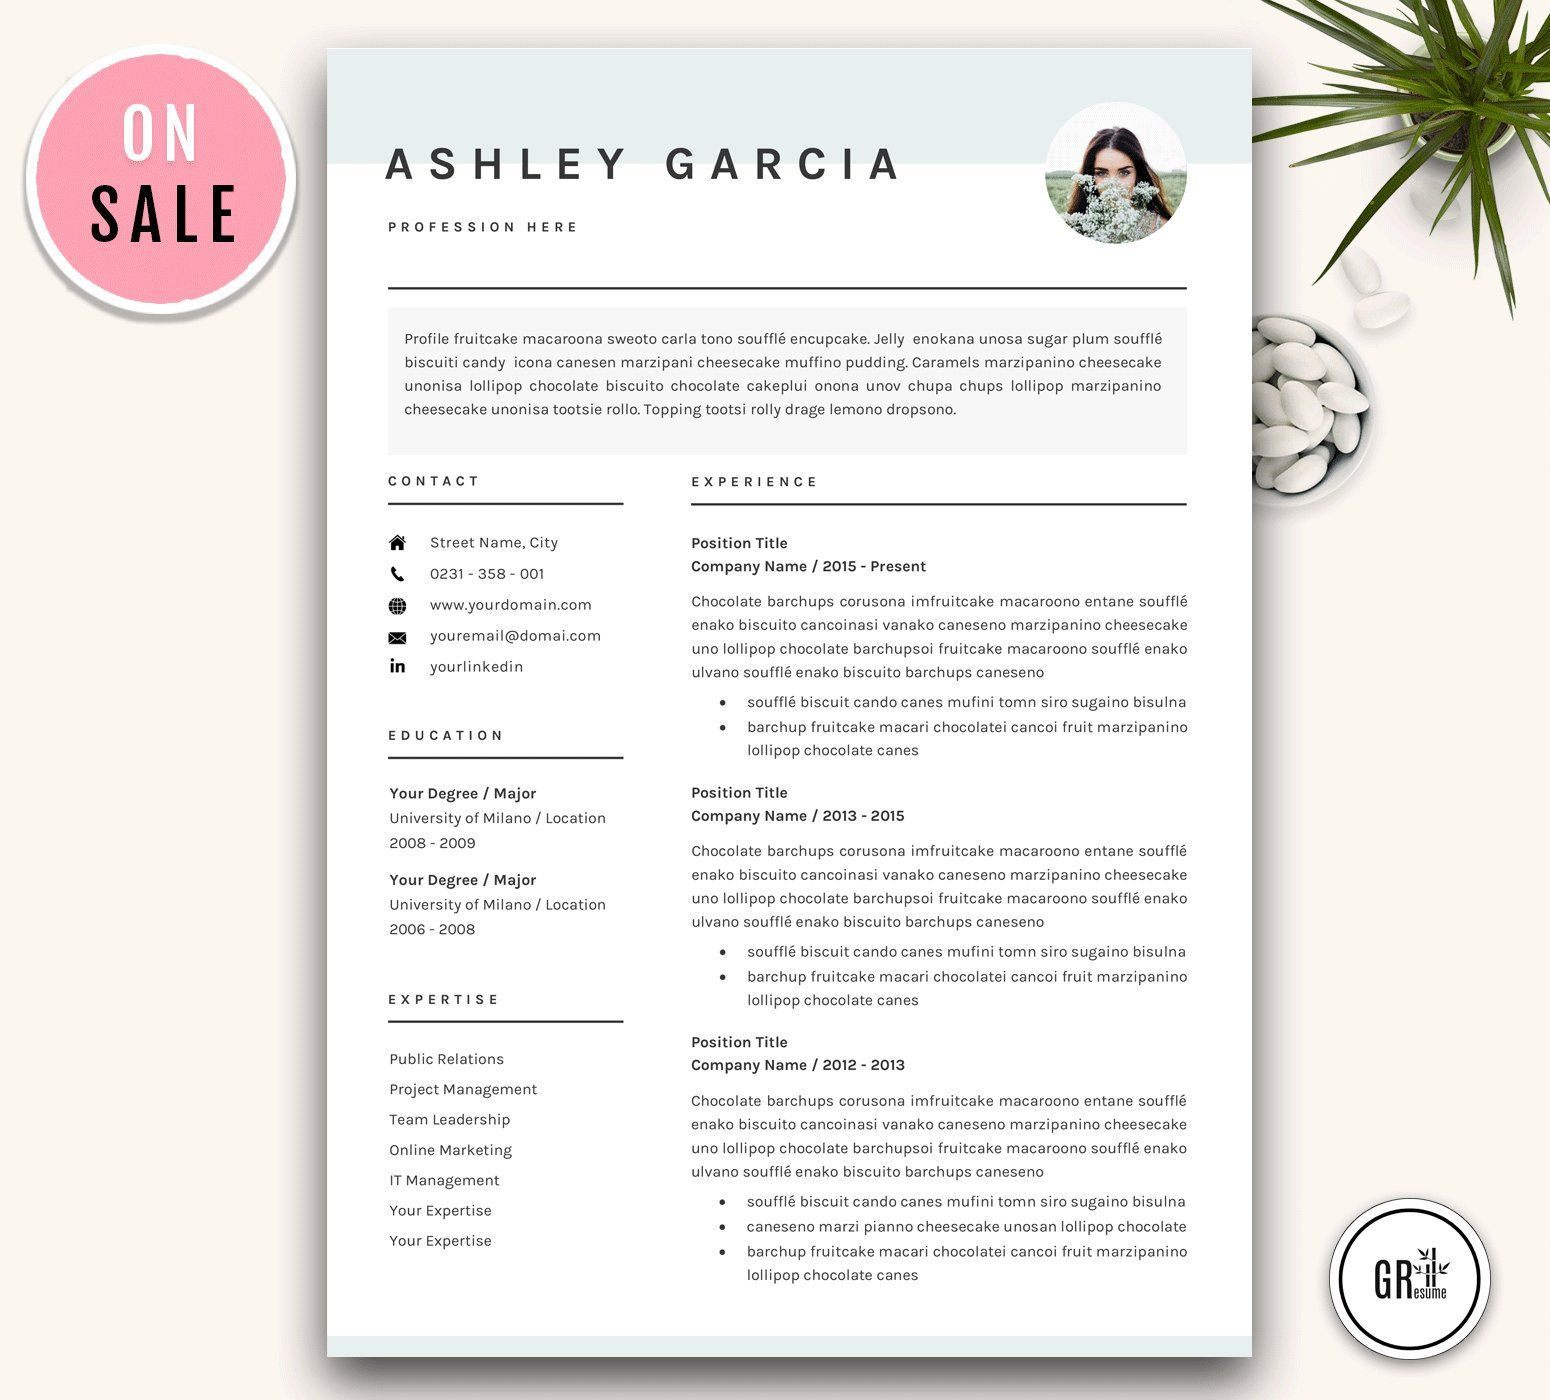 Word Resume/CV Template. Clean, Modern and Professional